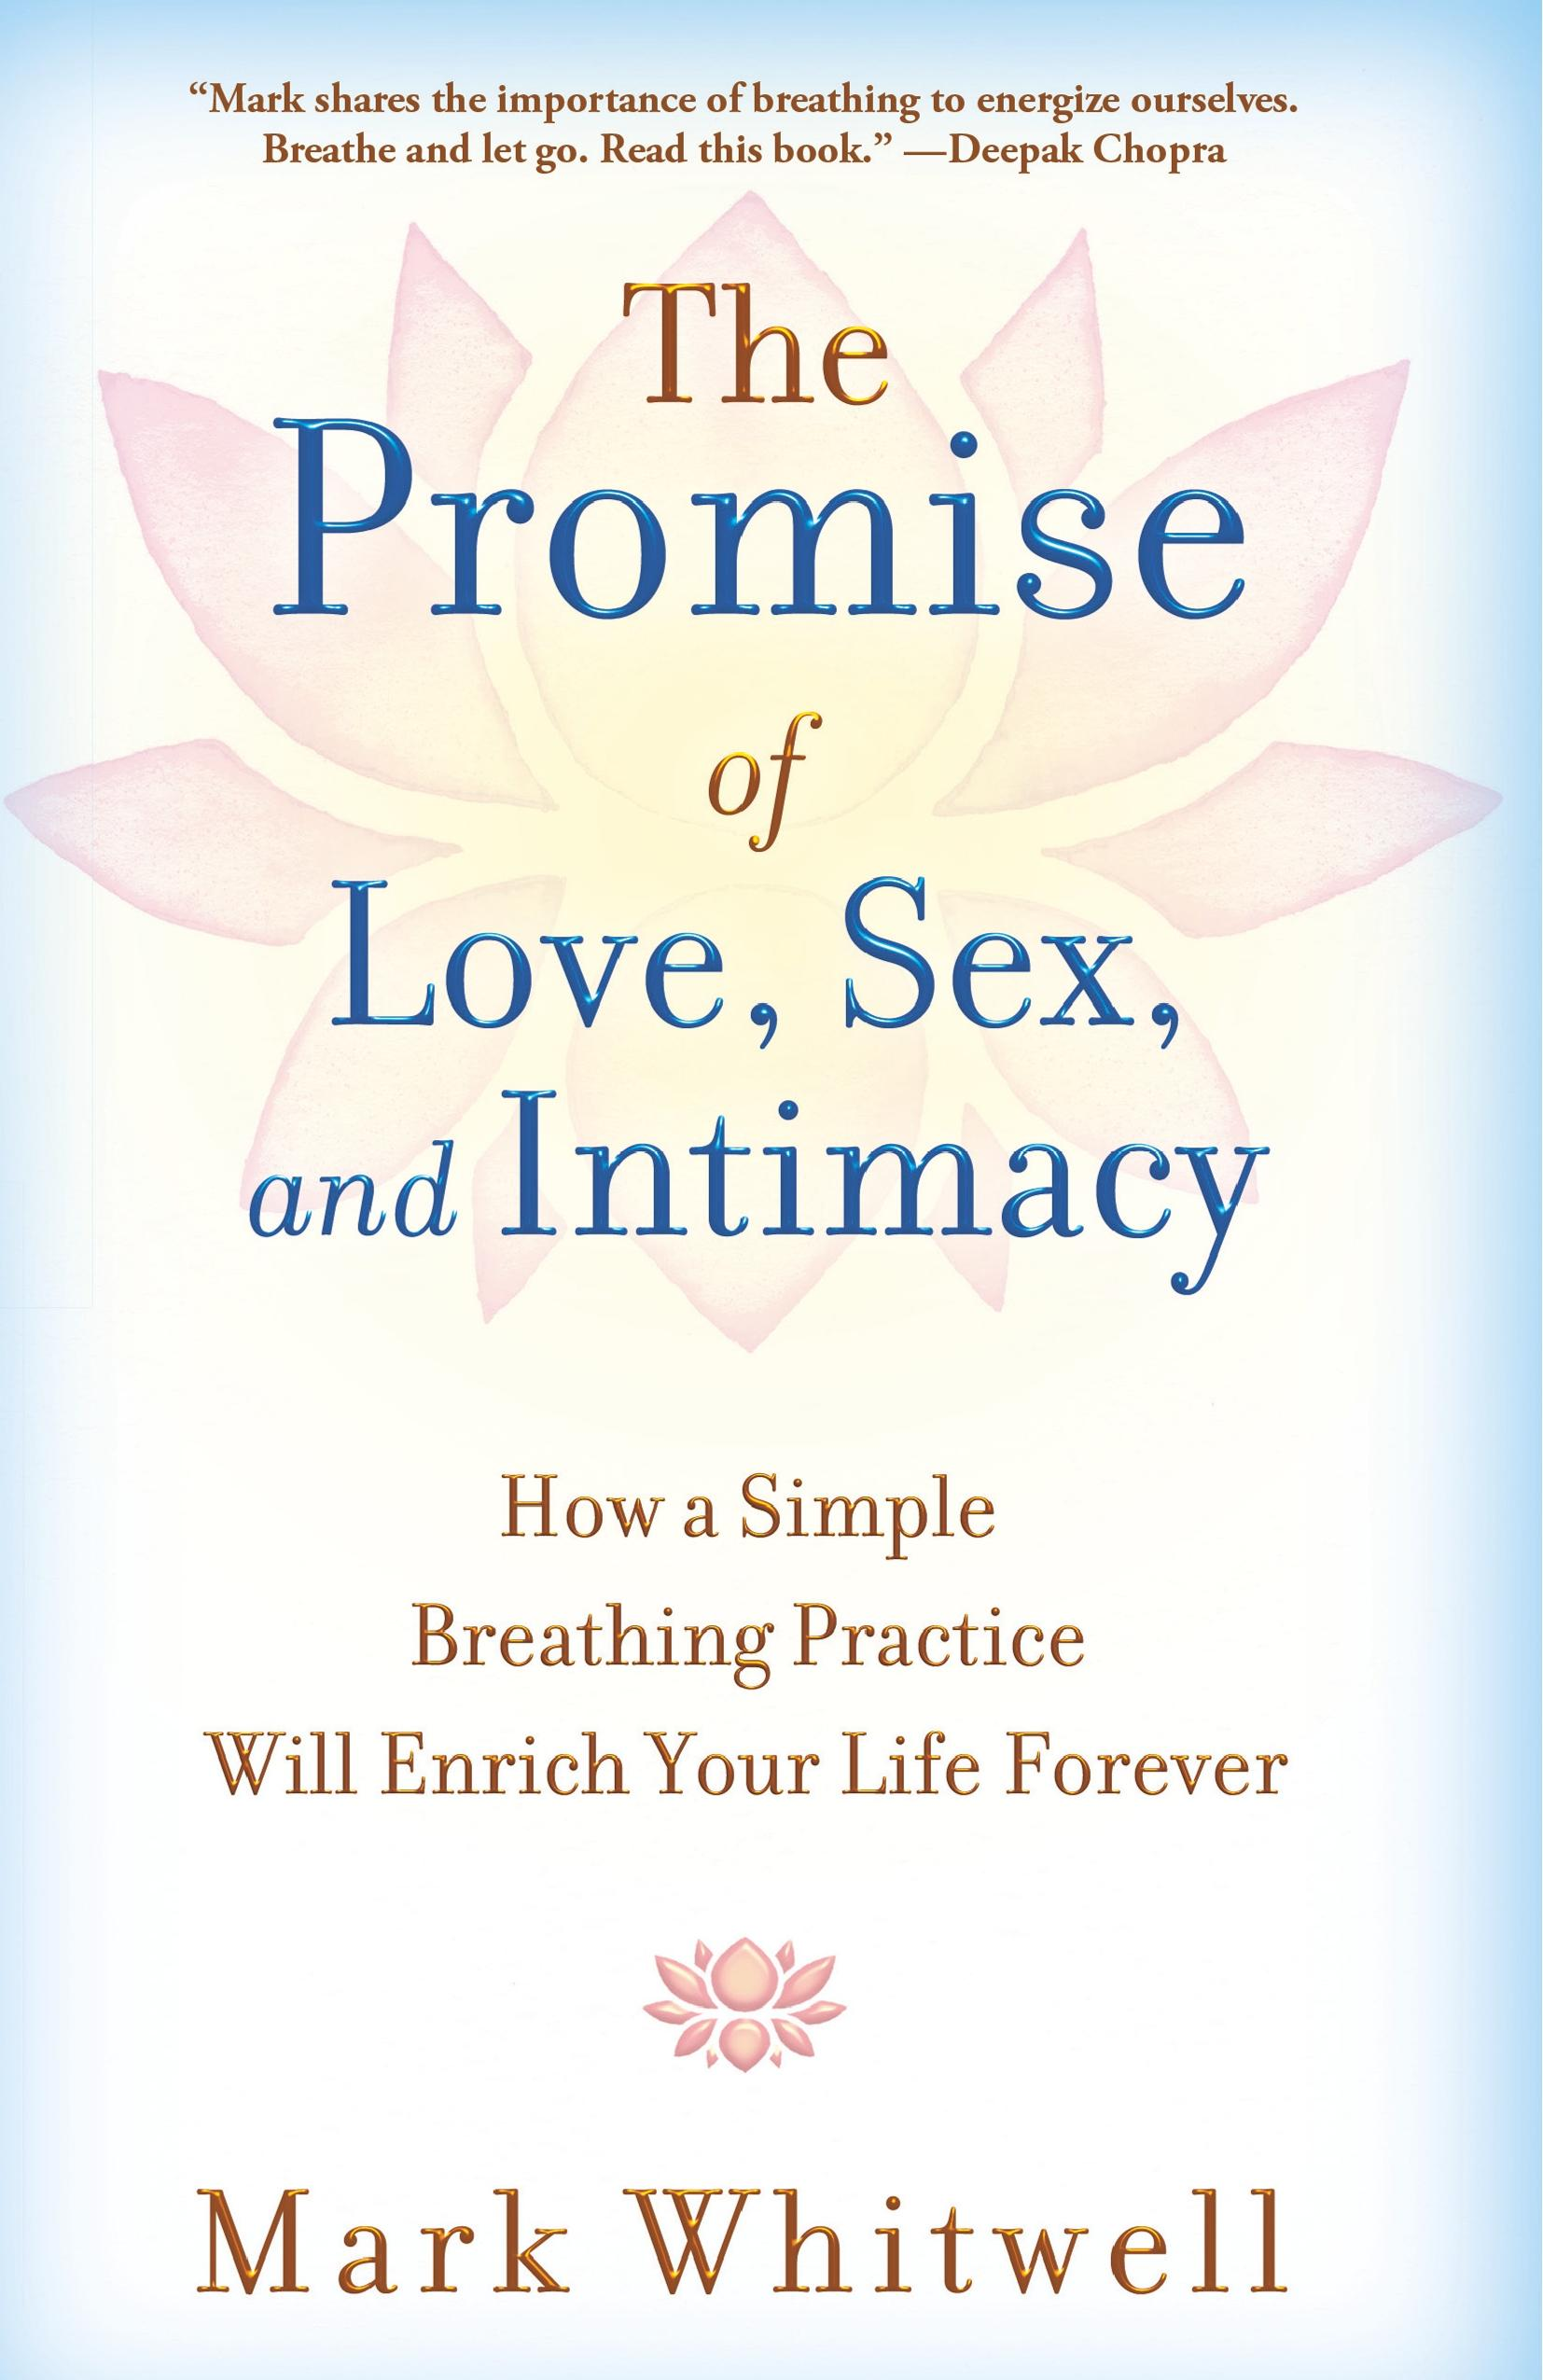 promise of love, sex, and intimacy